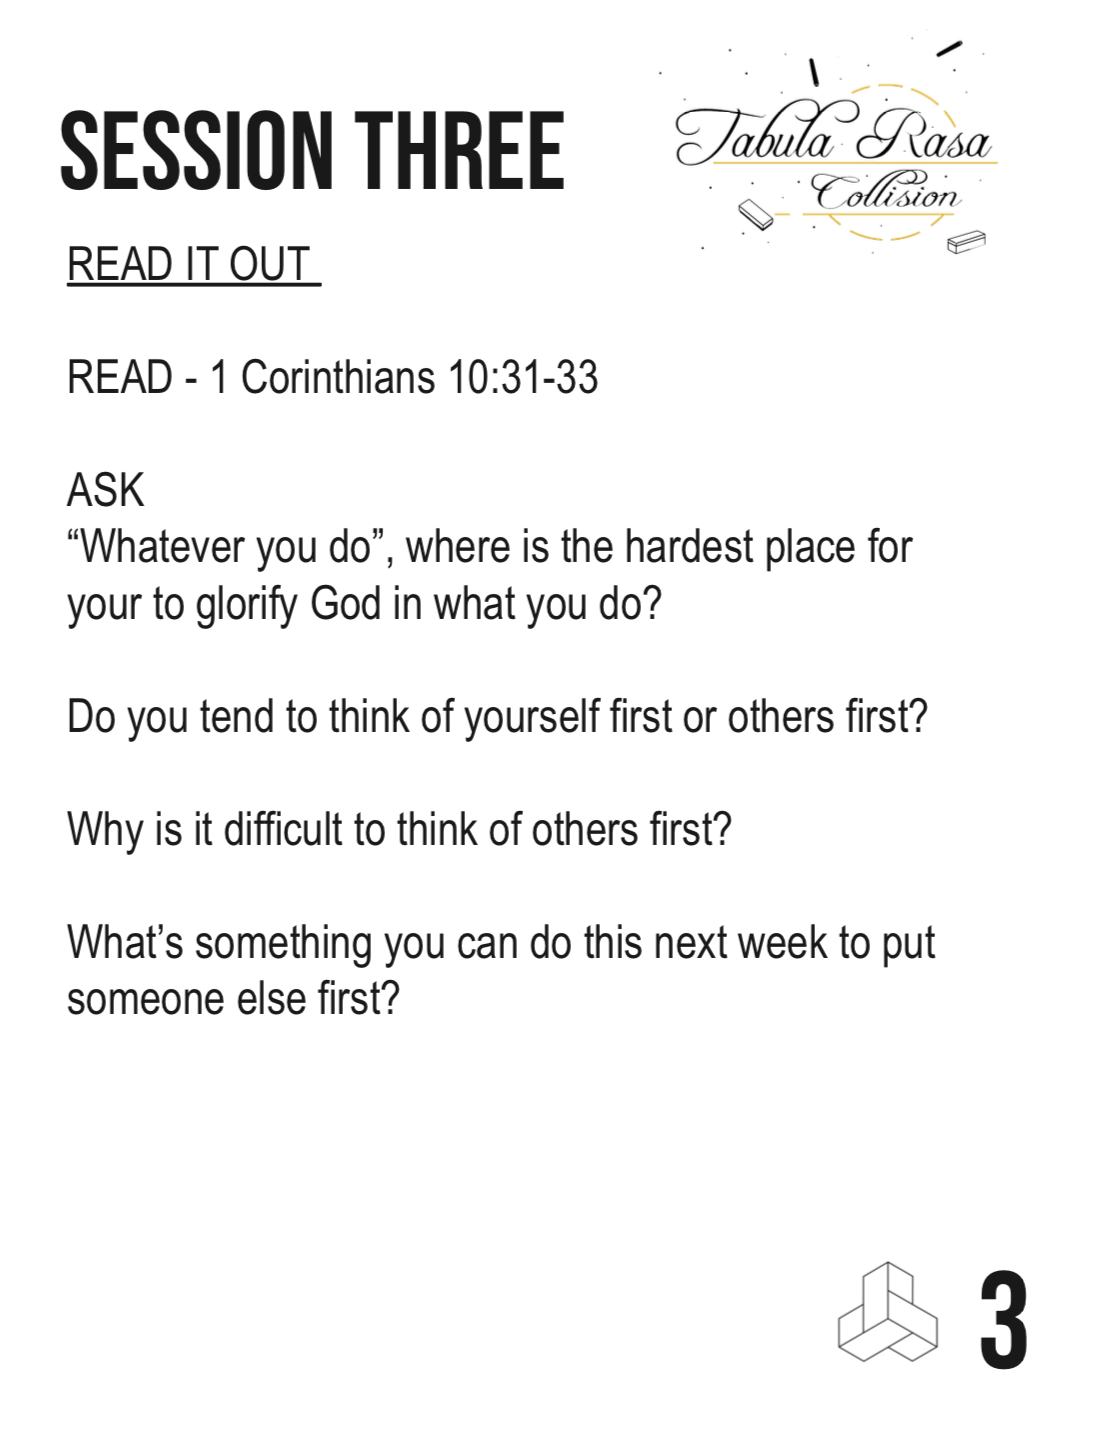 Session3-3.png